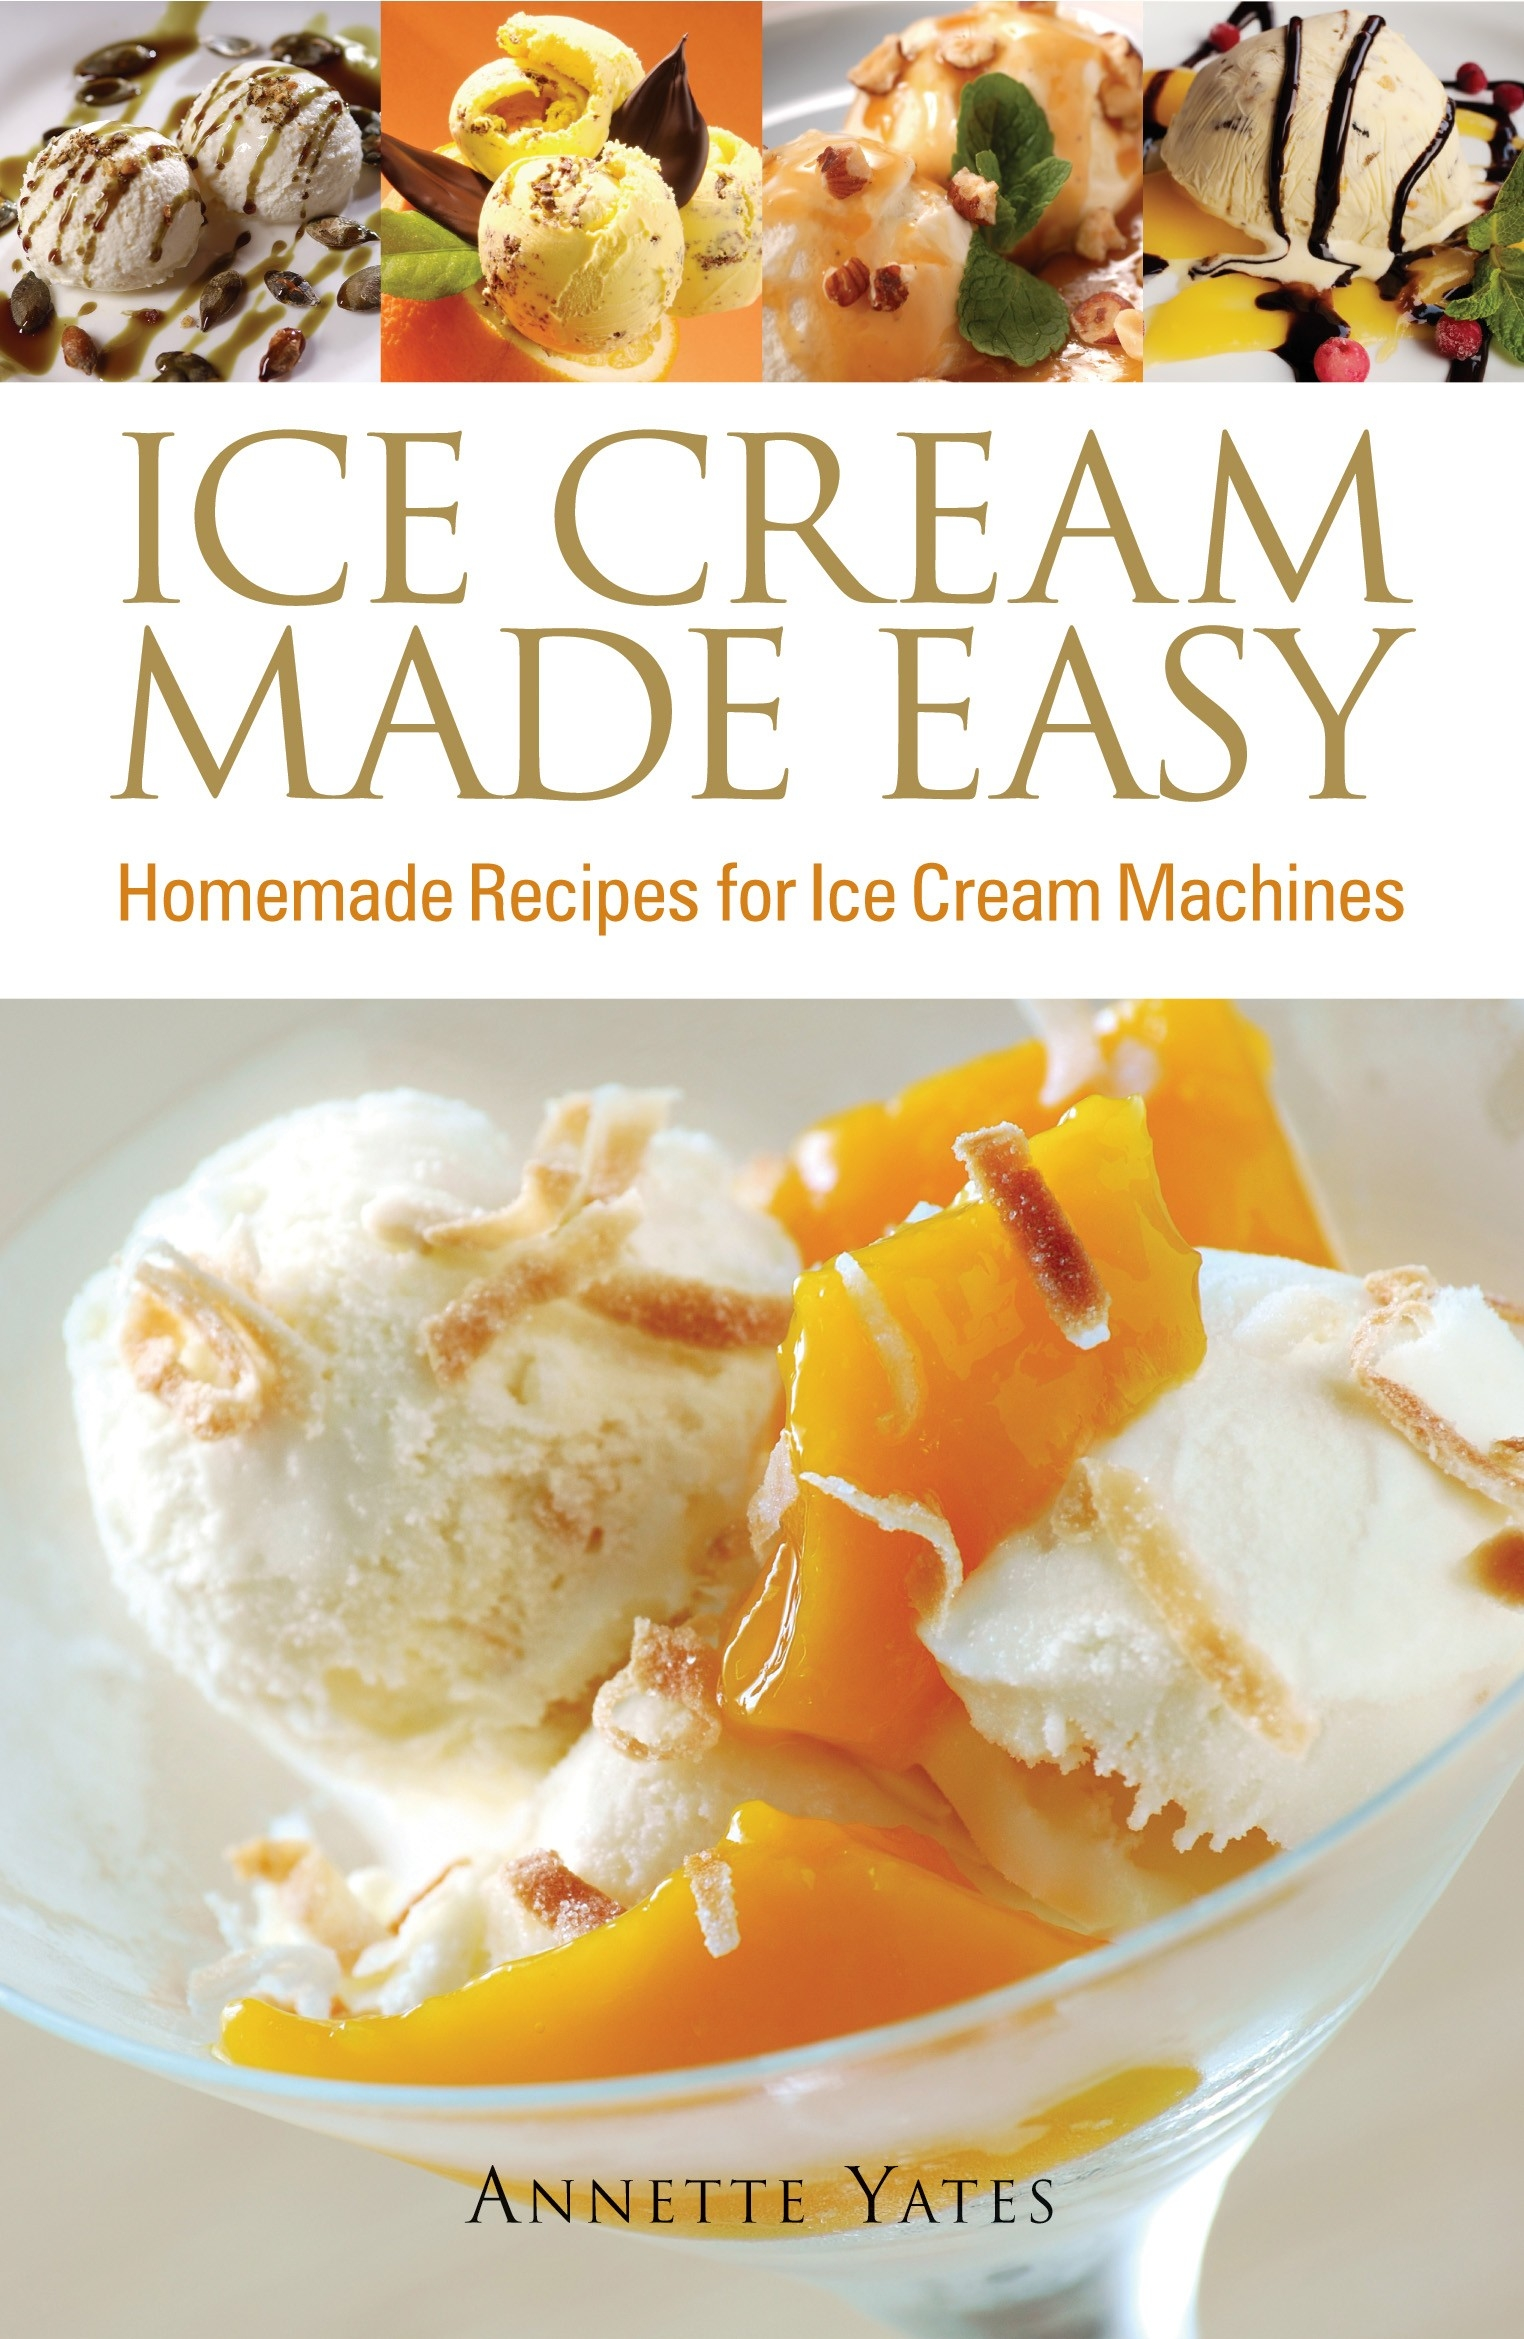 Ice Cream Made Easy By: Annette Yates